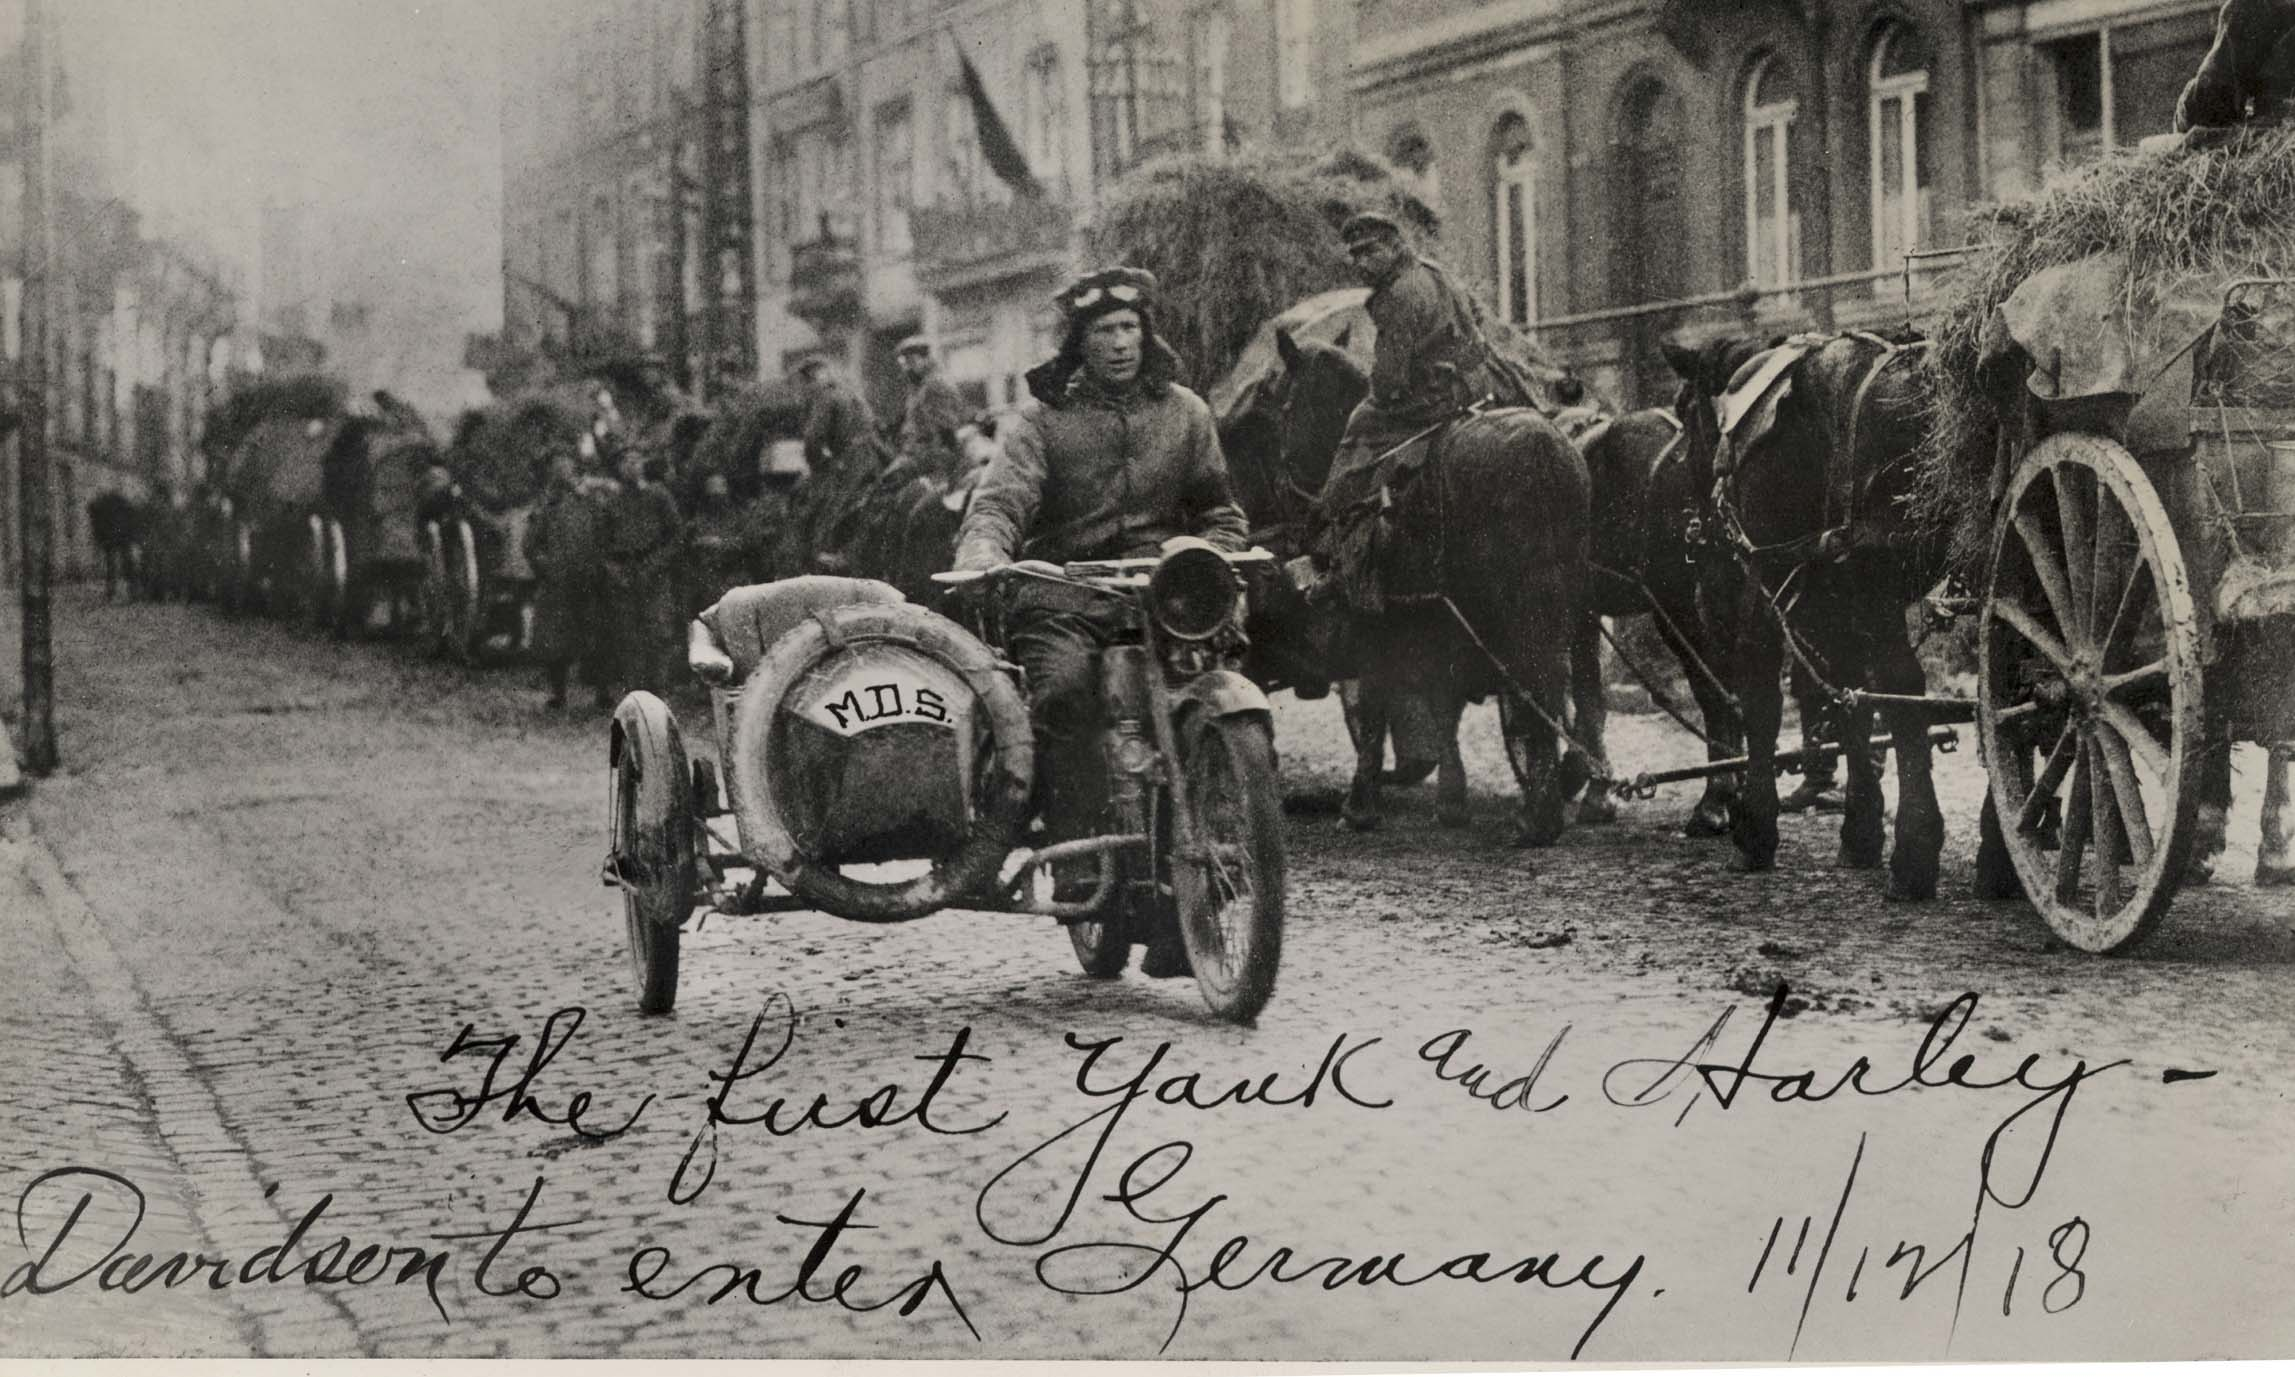 Harley-Davidson's went to war in 1917 with the US Army. This picture is of the first Harley-Davidson to enter Germany during that conflict. (Picture courtesy visordown.com).